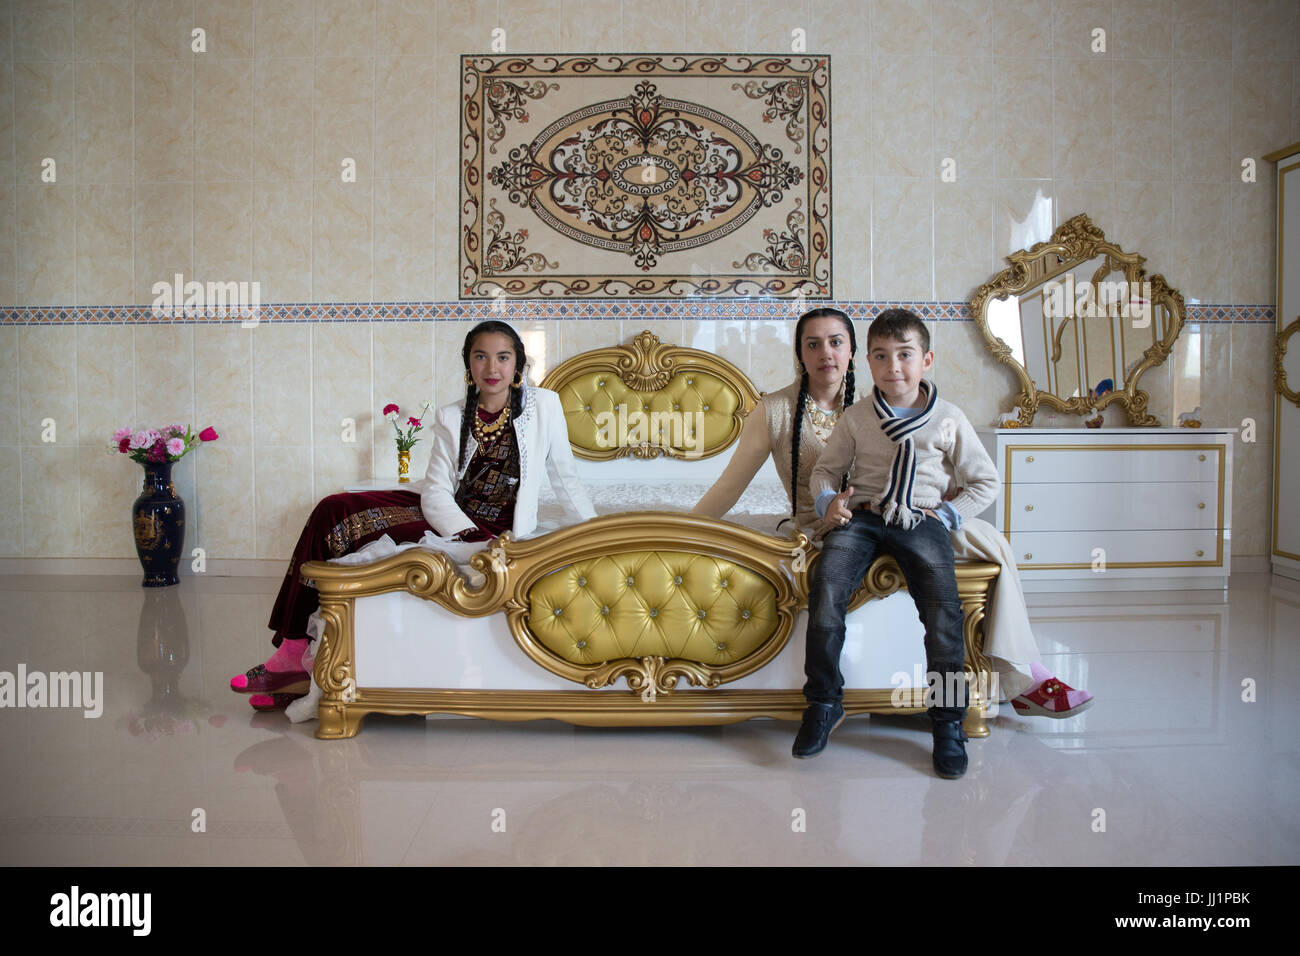 Kids of a wealthy Roma gypsy family posing in the luxurious bedroom of their house, Ivanesti, Romania Stock Photo